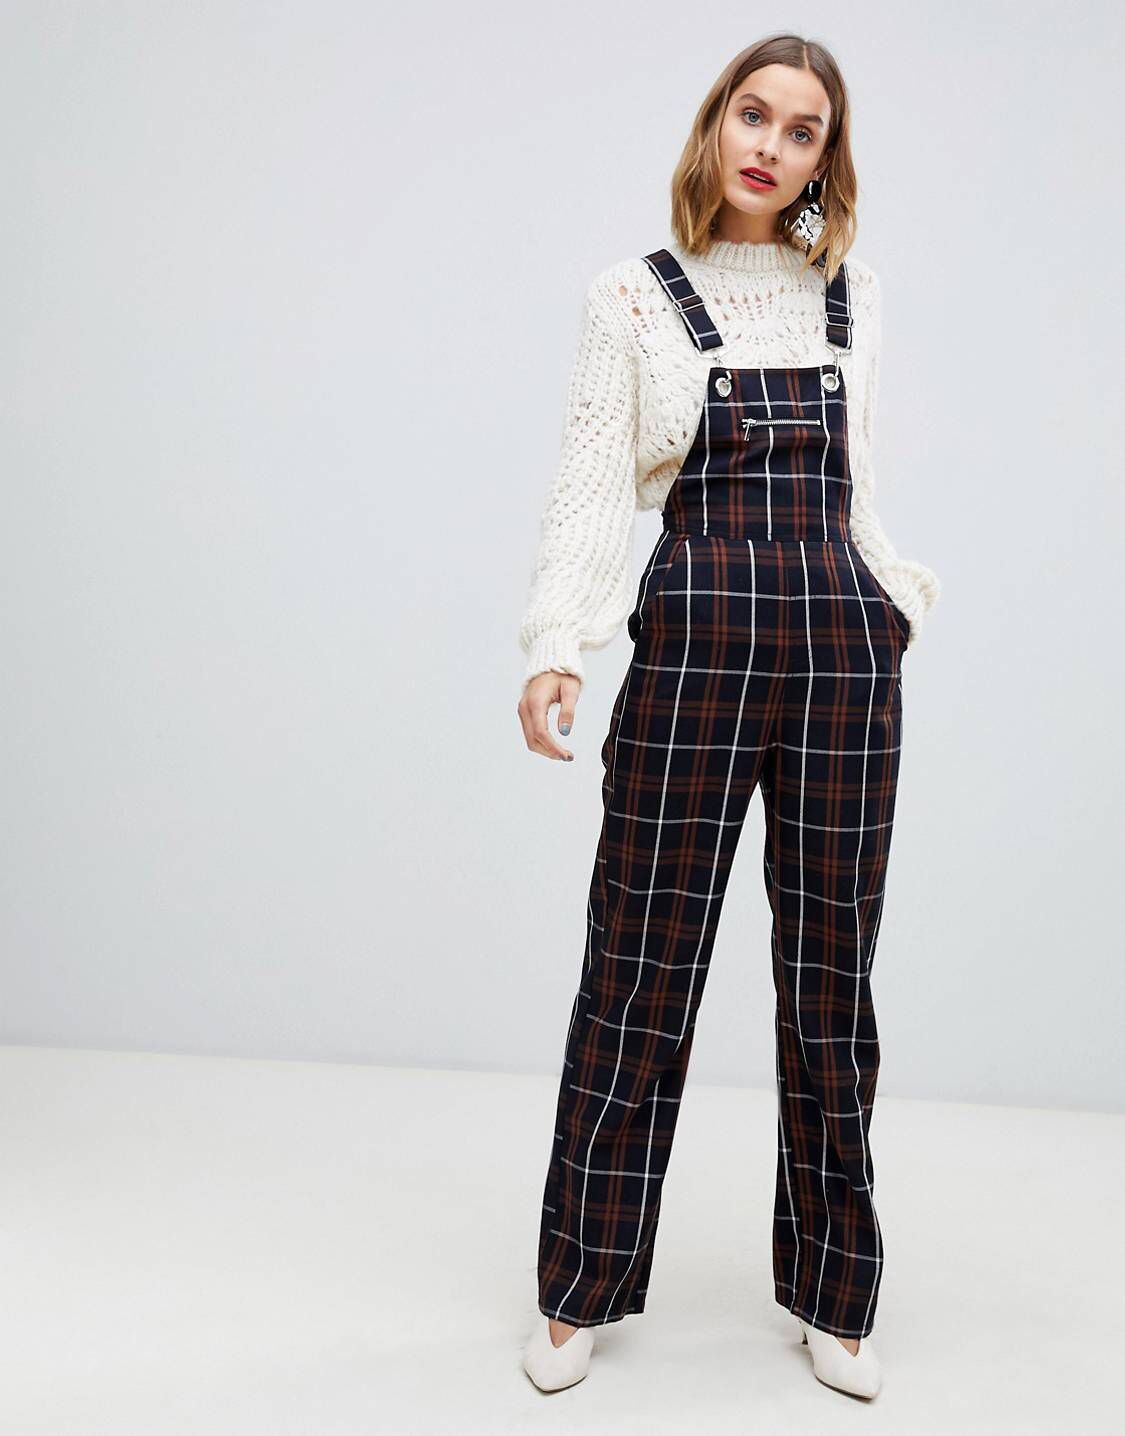 2b167aaff79 Just when I thought I didn t need something new from ASOS